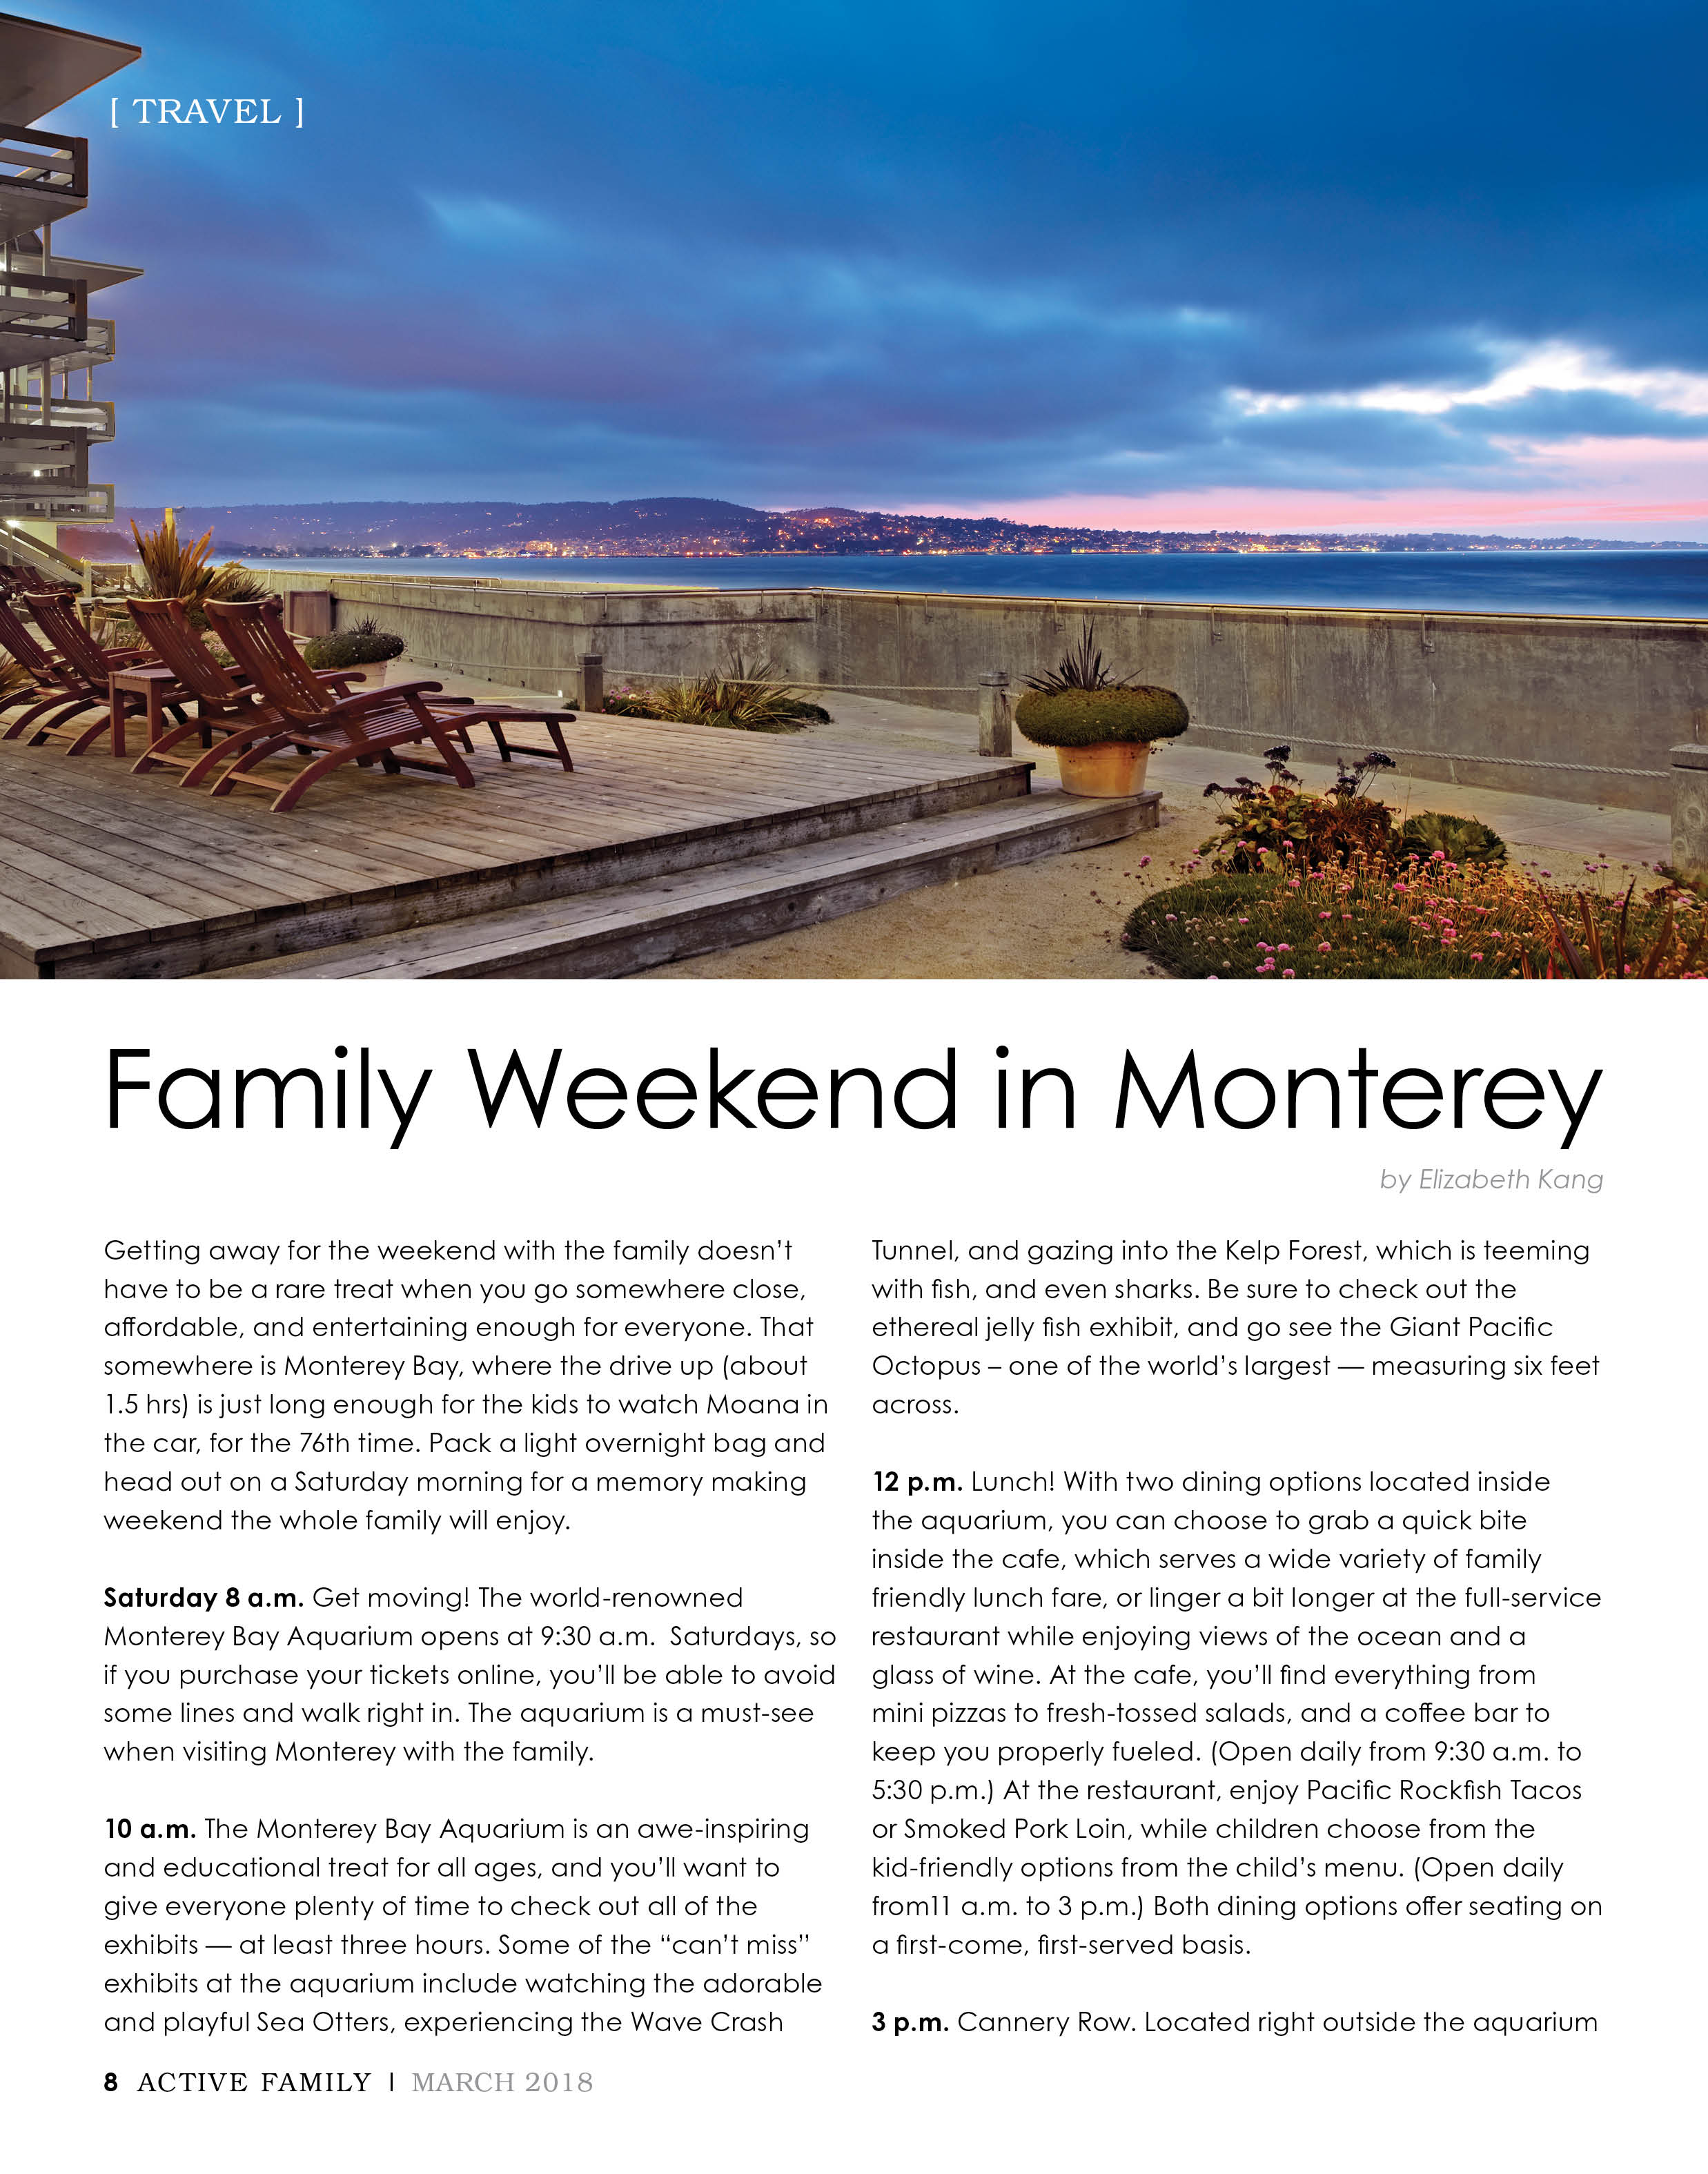 Family Weekend in Monterey - Active Family Magazine